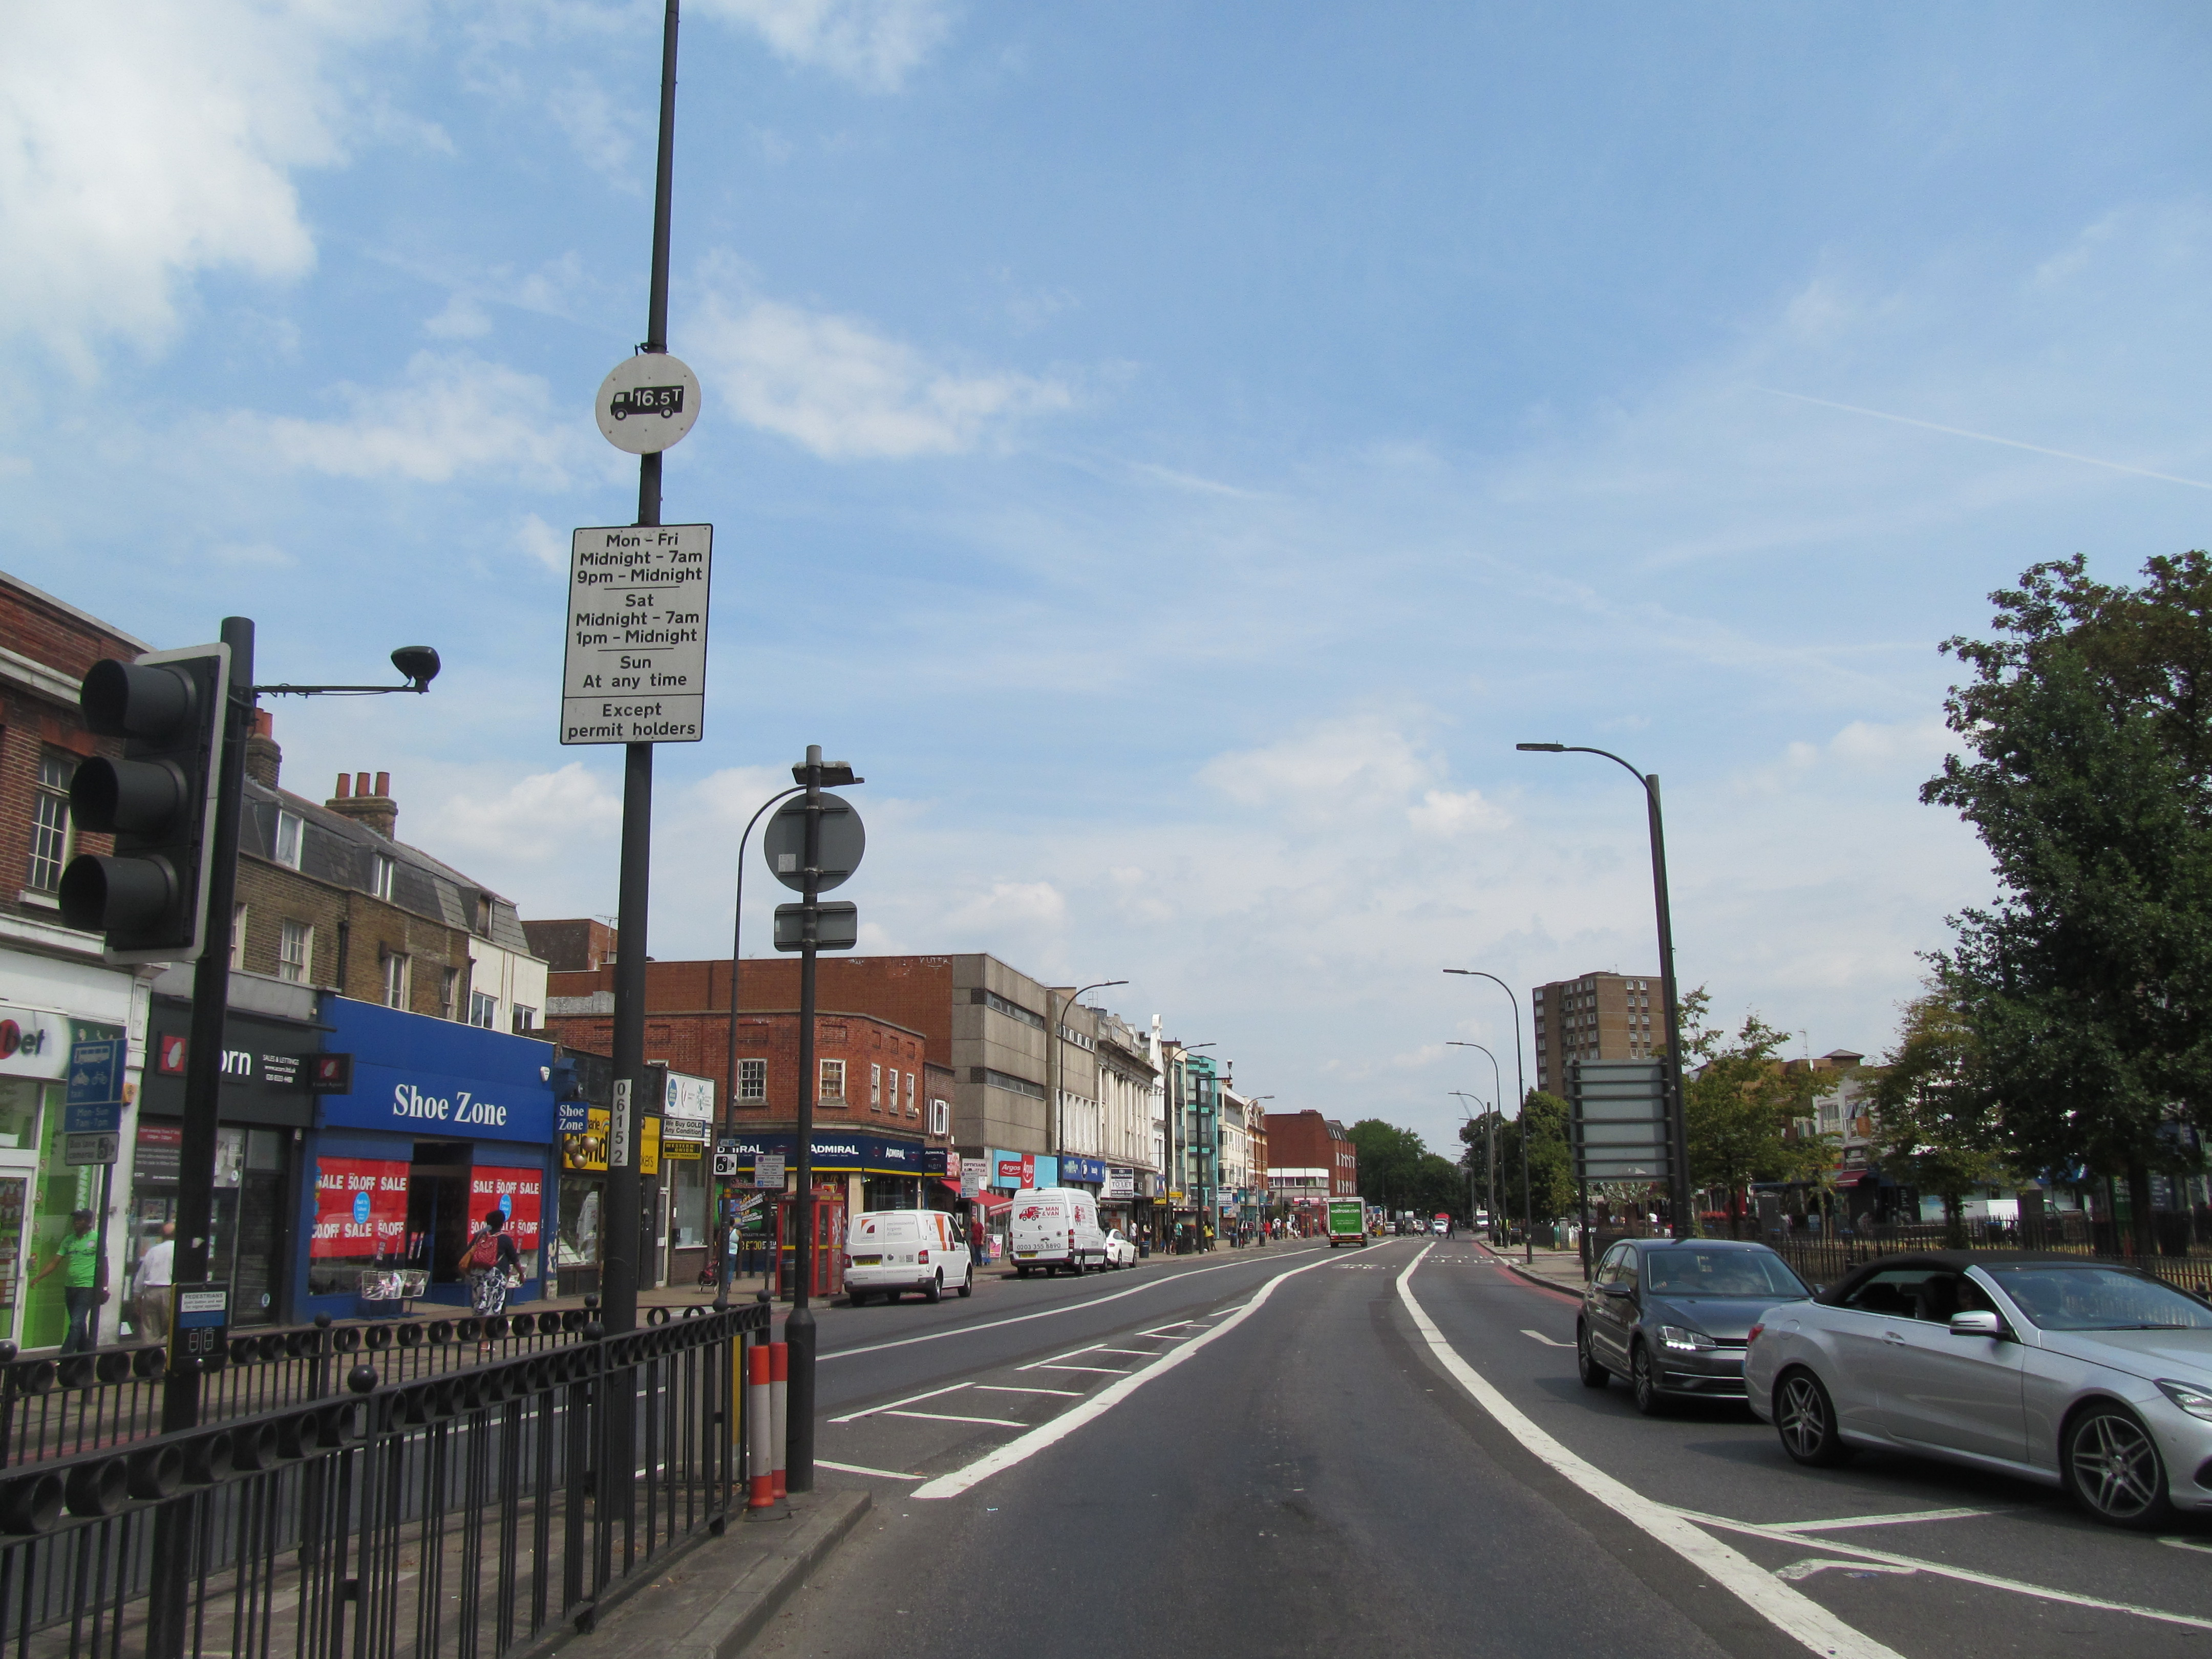 Lewisham to Catford to see temporary cycle lanes introduced